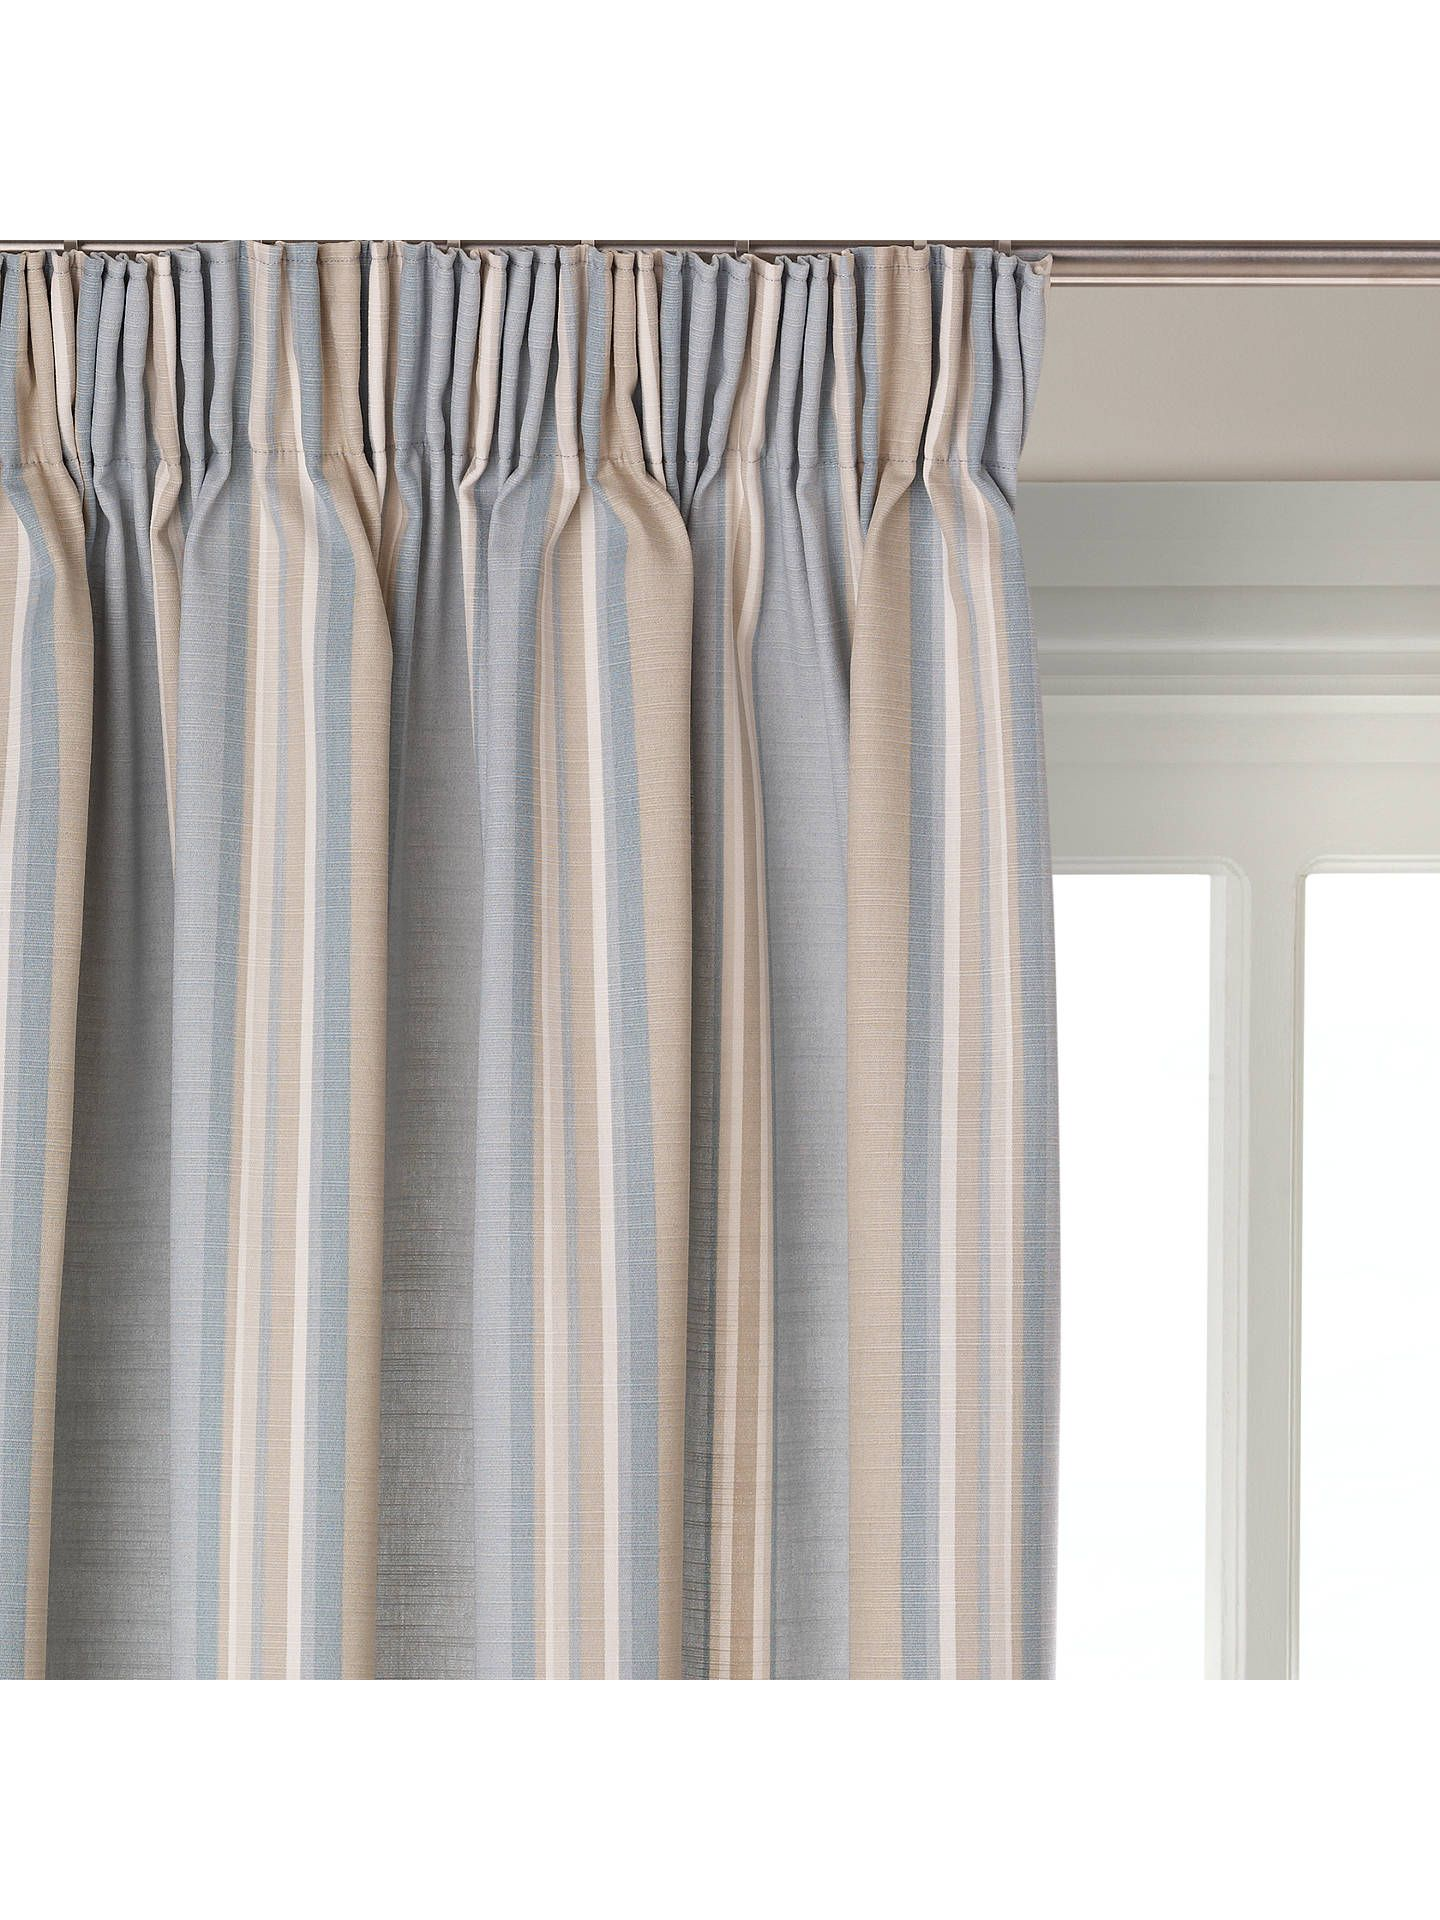 John Lewis Partners Alban Stripe Pair Blackout Lined Pencil Pleat Curtains Duck Egg Pleated Curtains Pencil Pleat Curtains